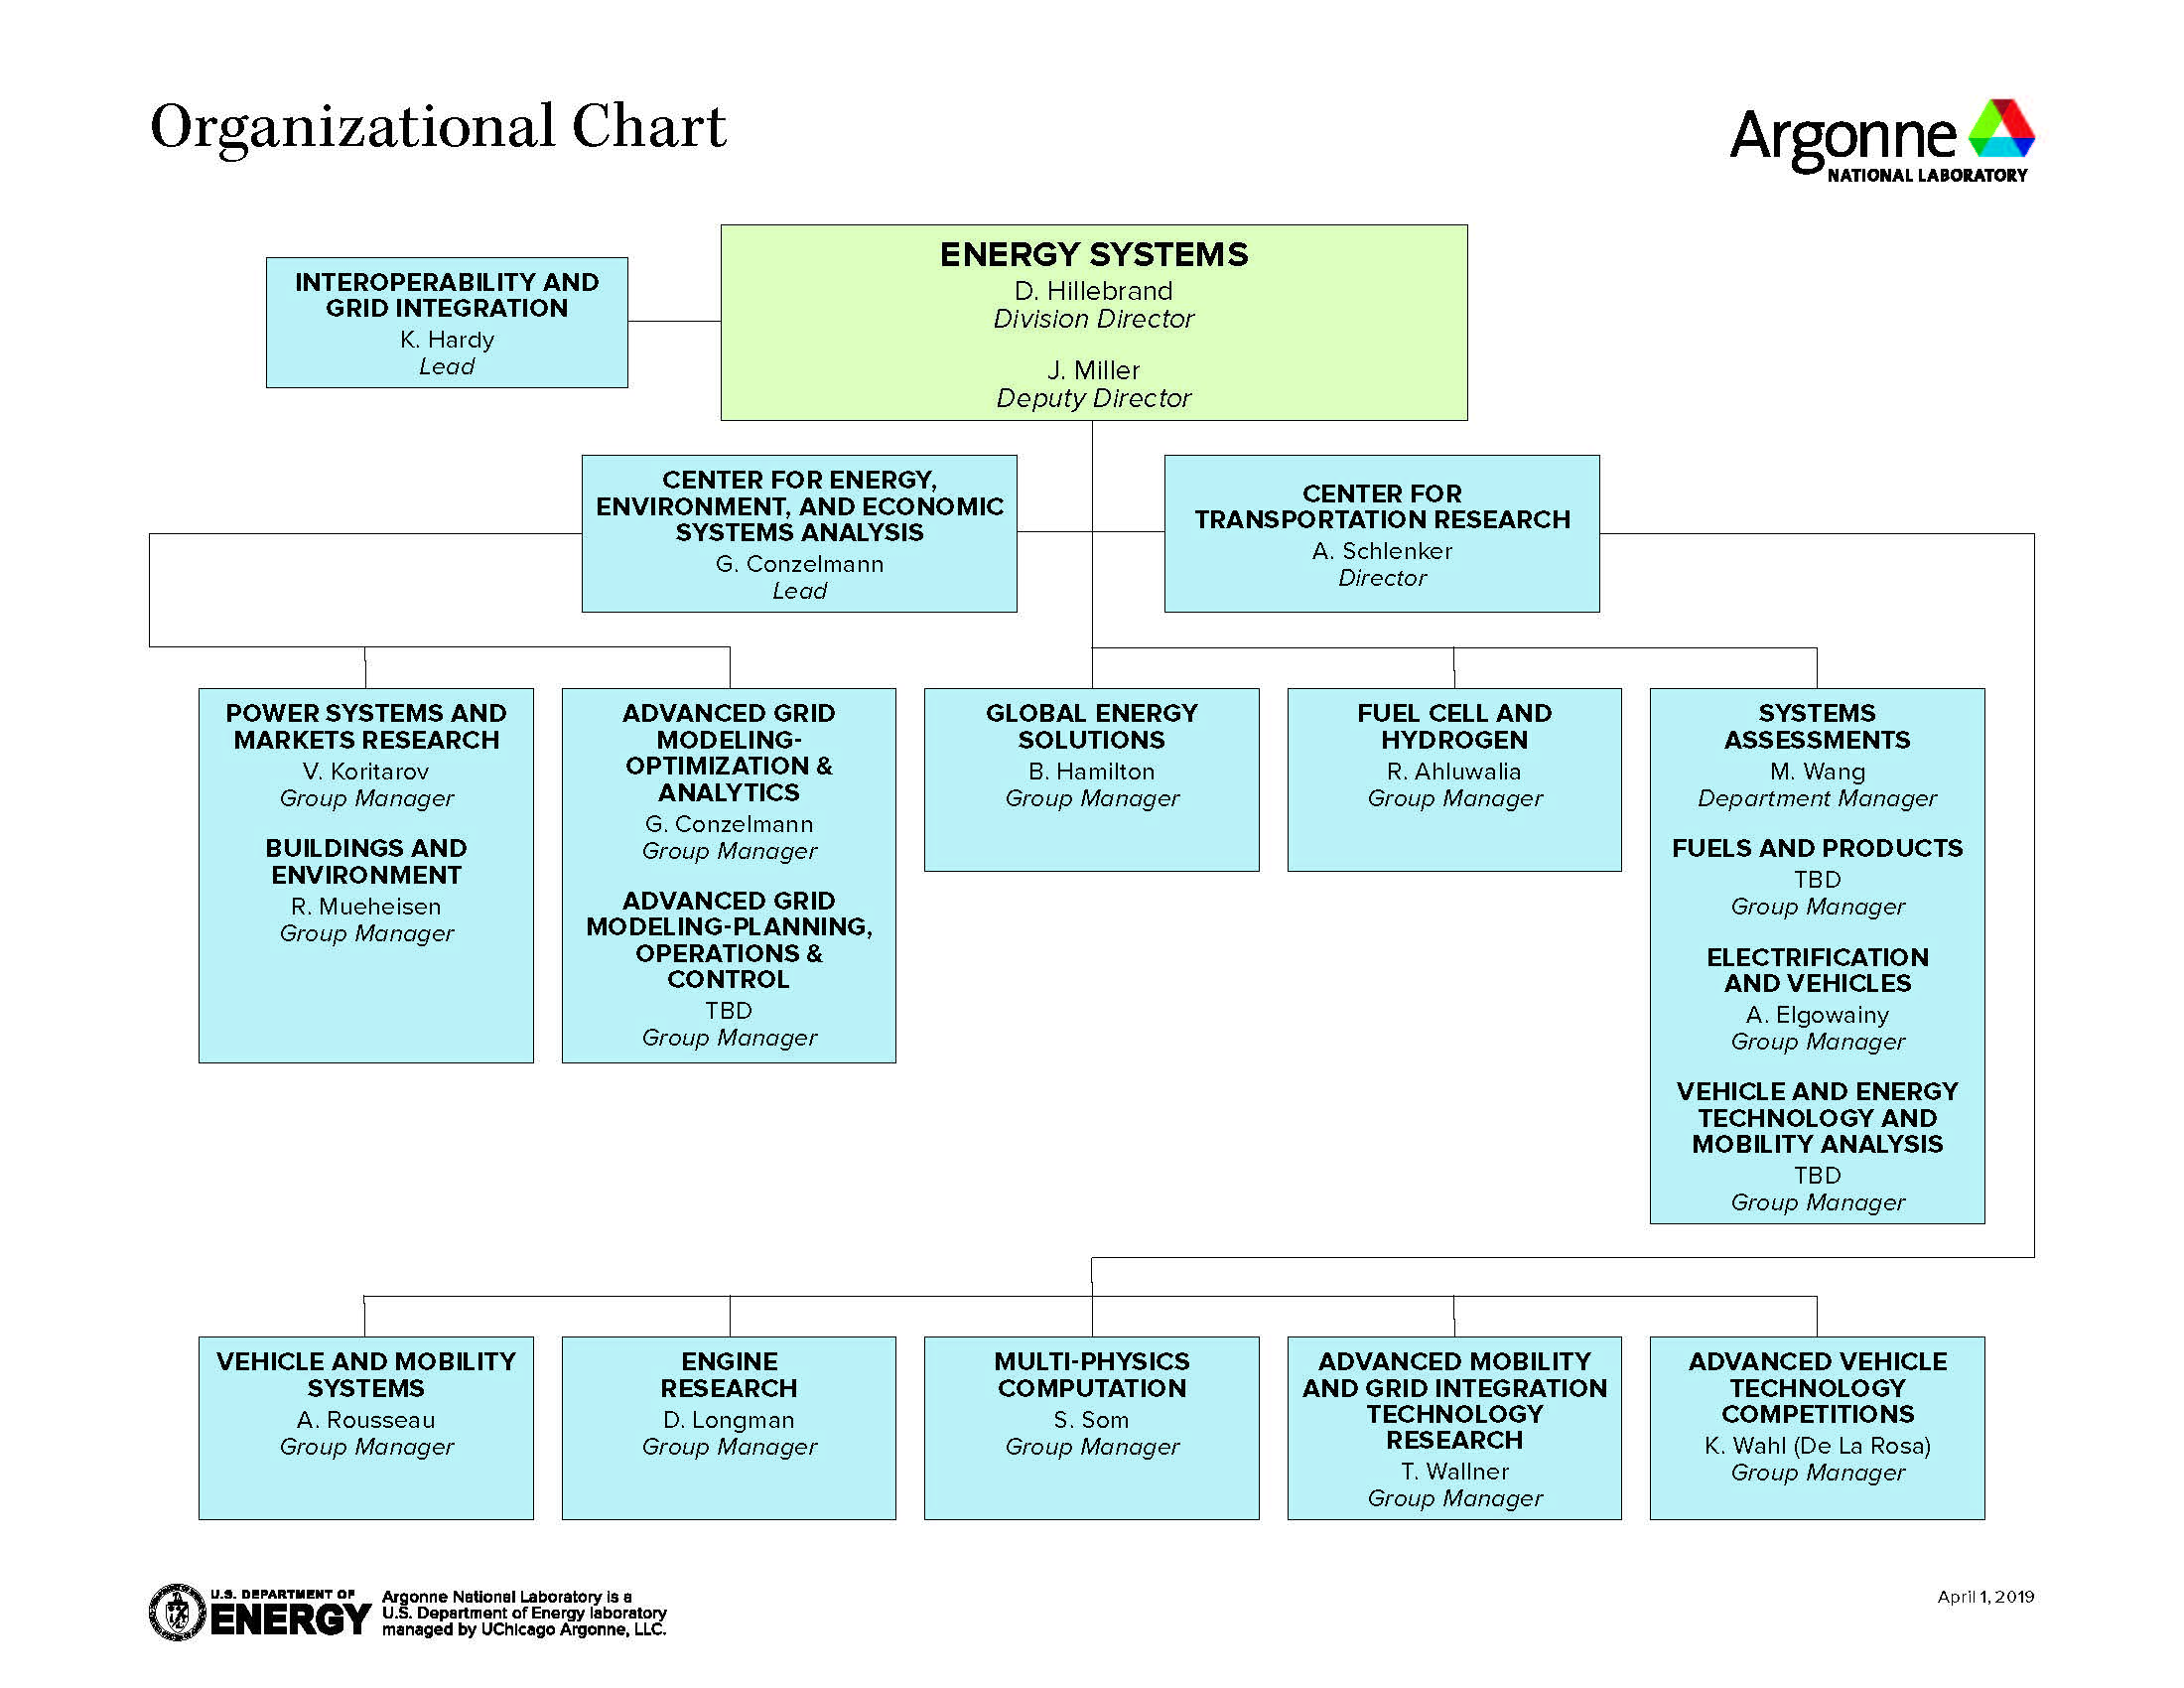 Organization chart of the Argonne Energy Systems division